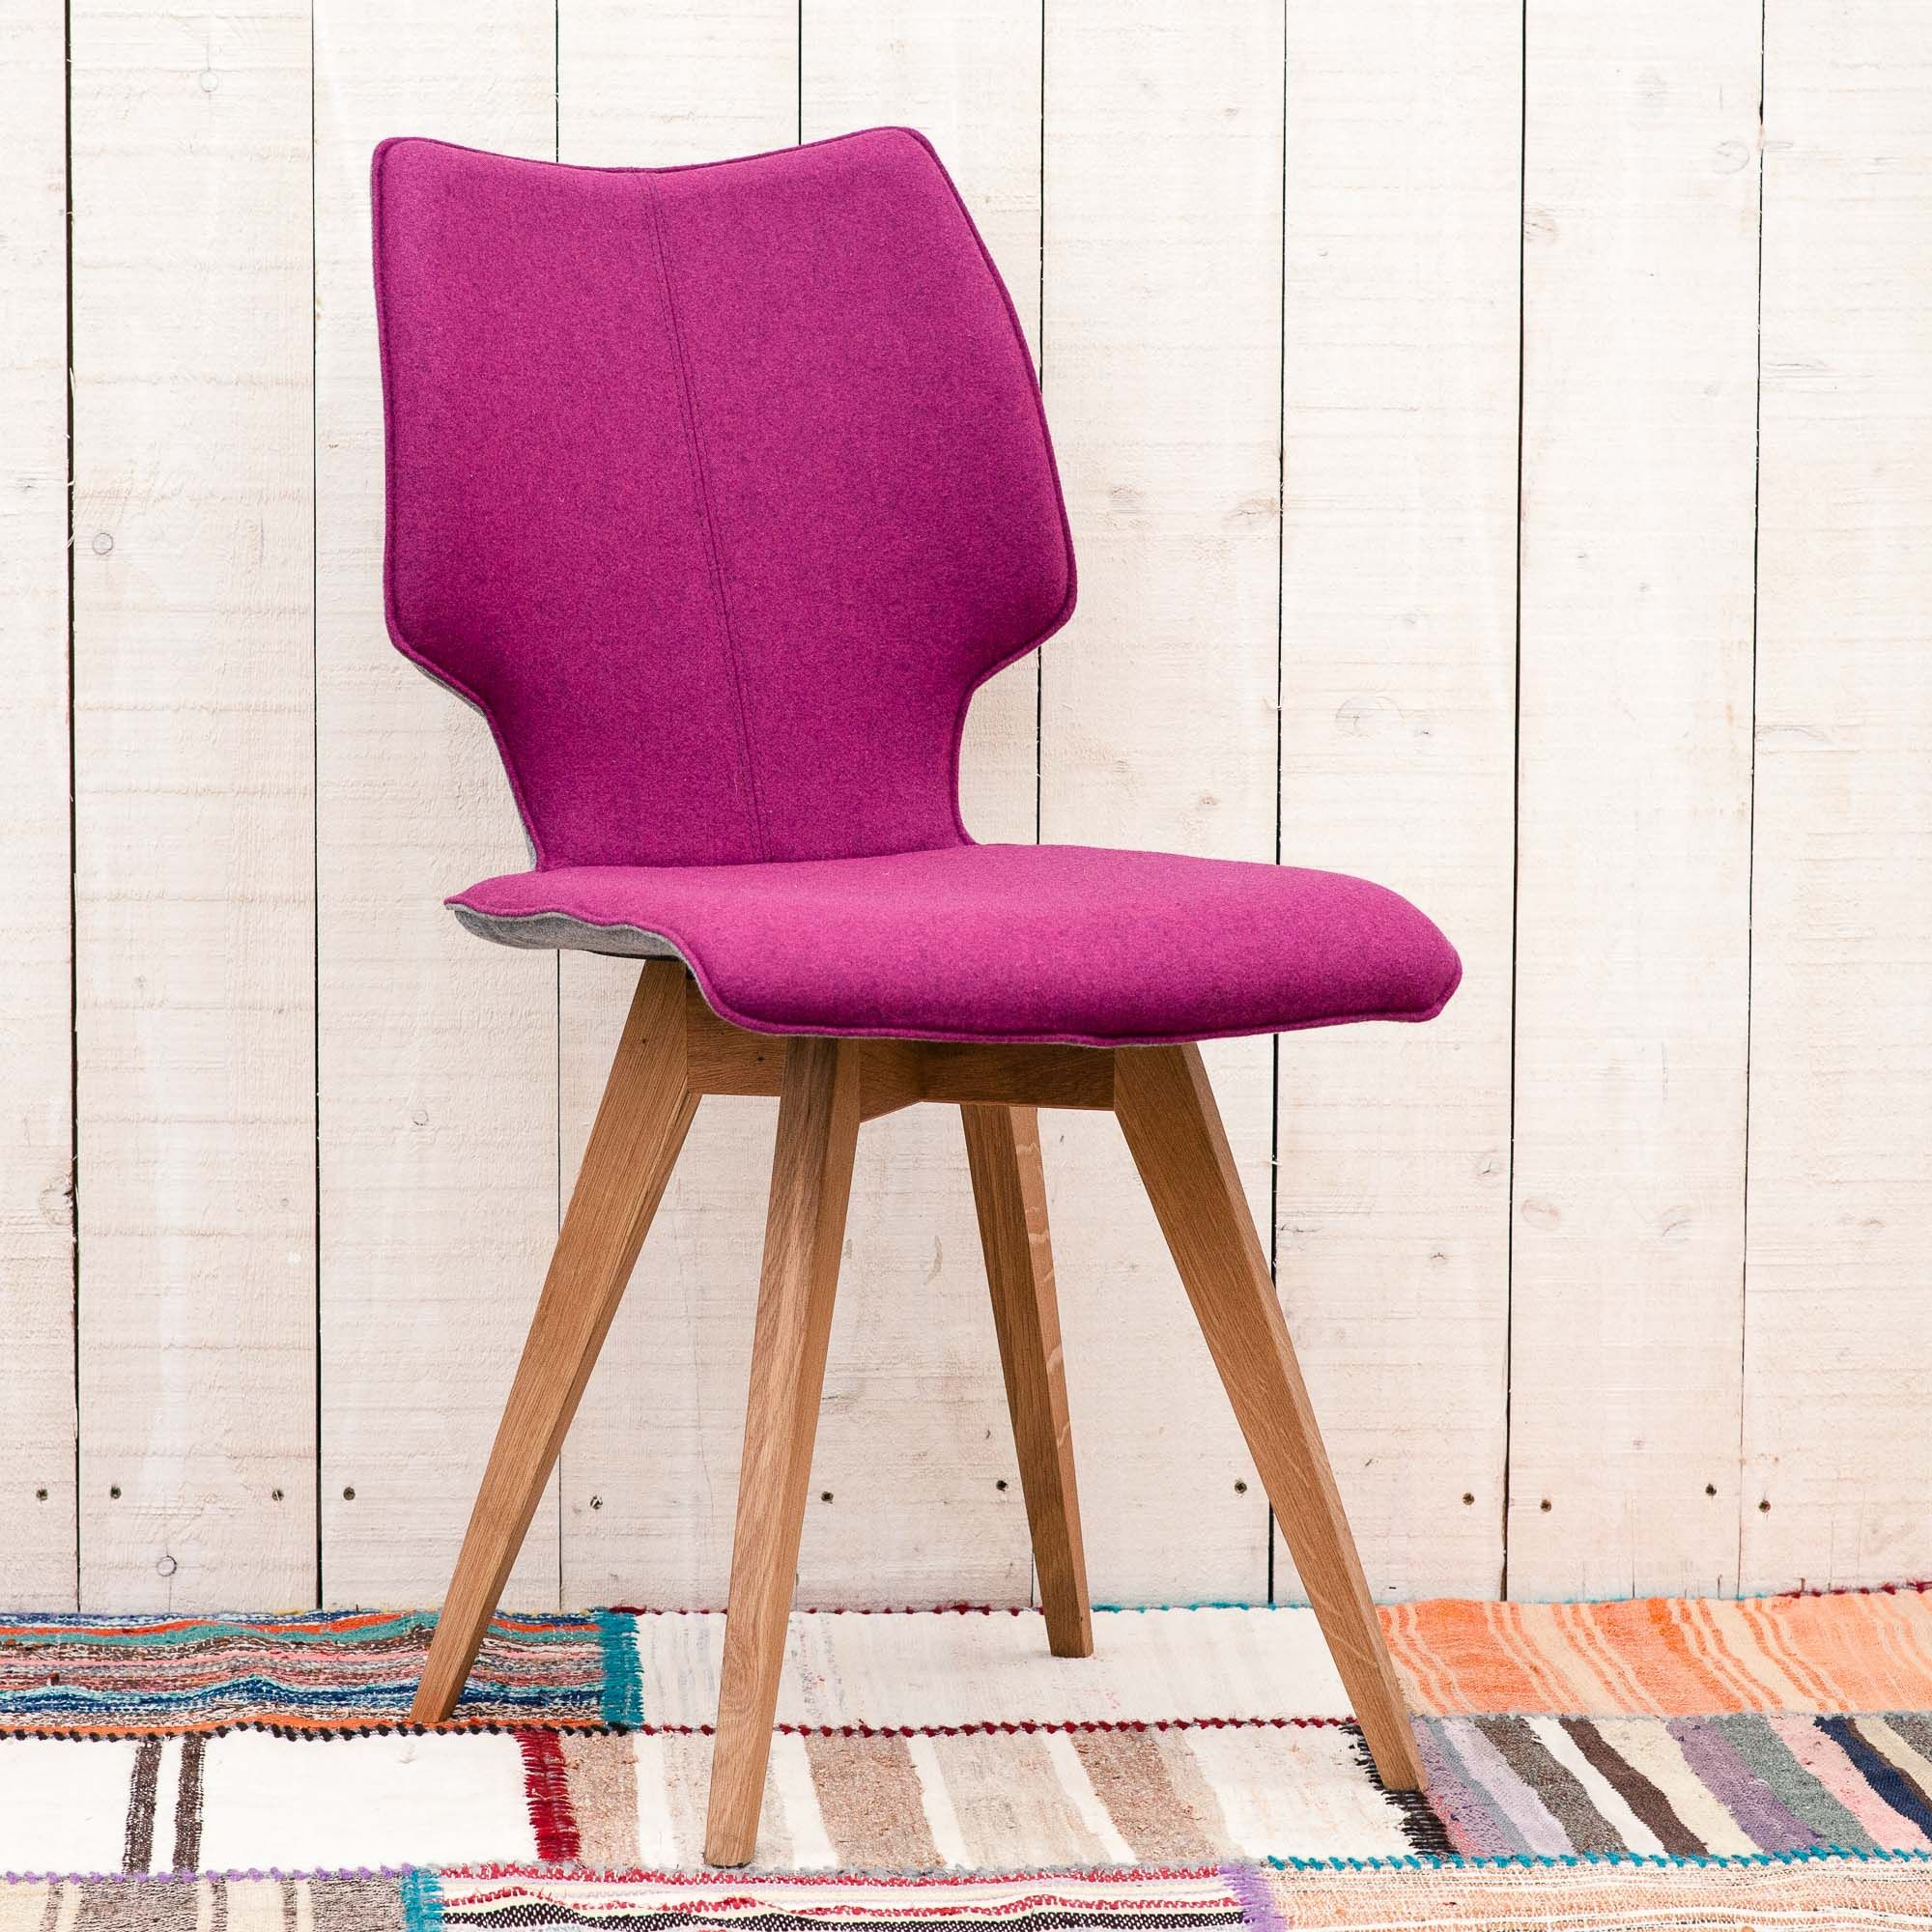 Clipper Felt Covered Chairs Cover Light Oak And Contemporary Dane Dine Folk Grey Dining Chair Fuchsia